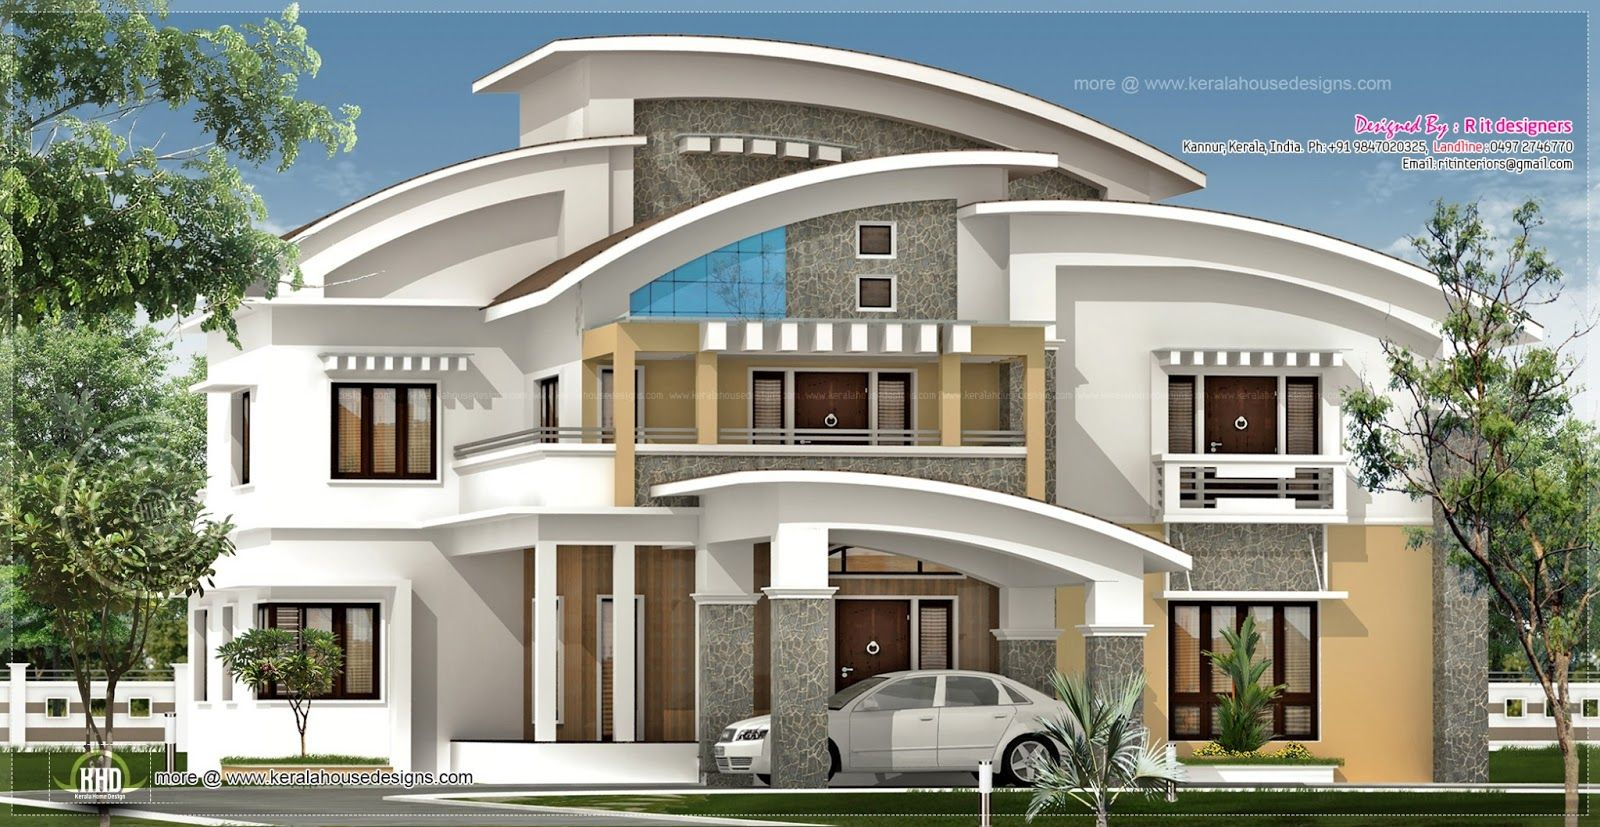 Luxury home exterior designs 3750 square feet luxury villa exterior kerala home design and